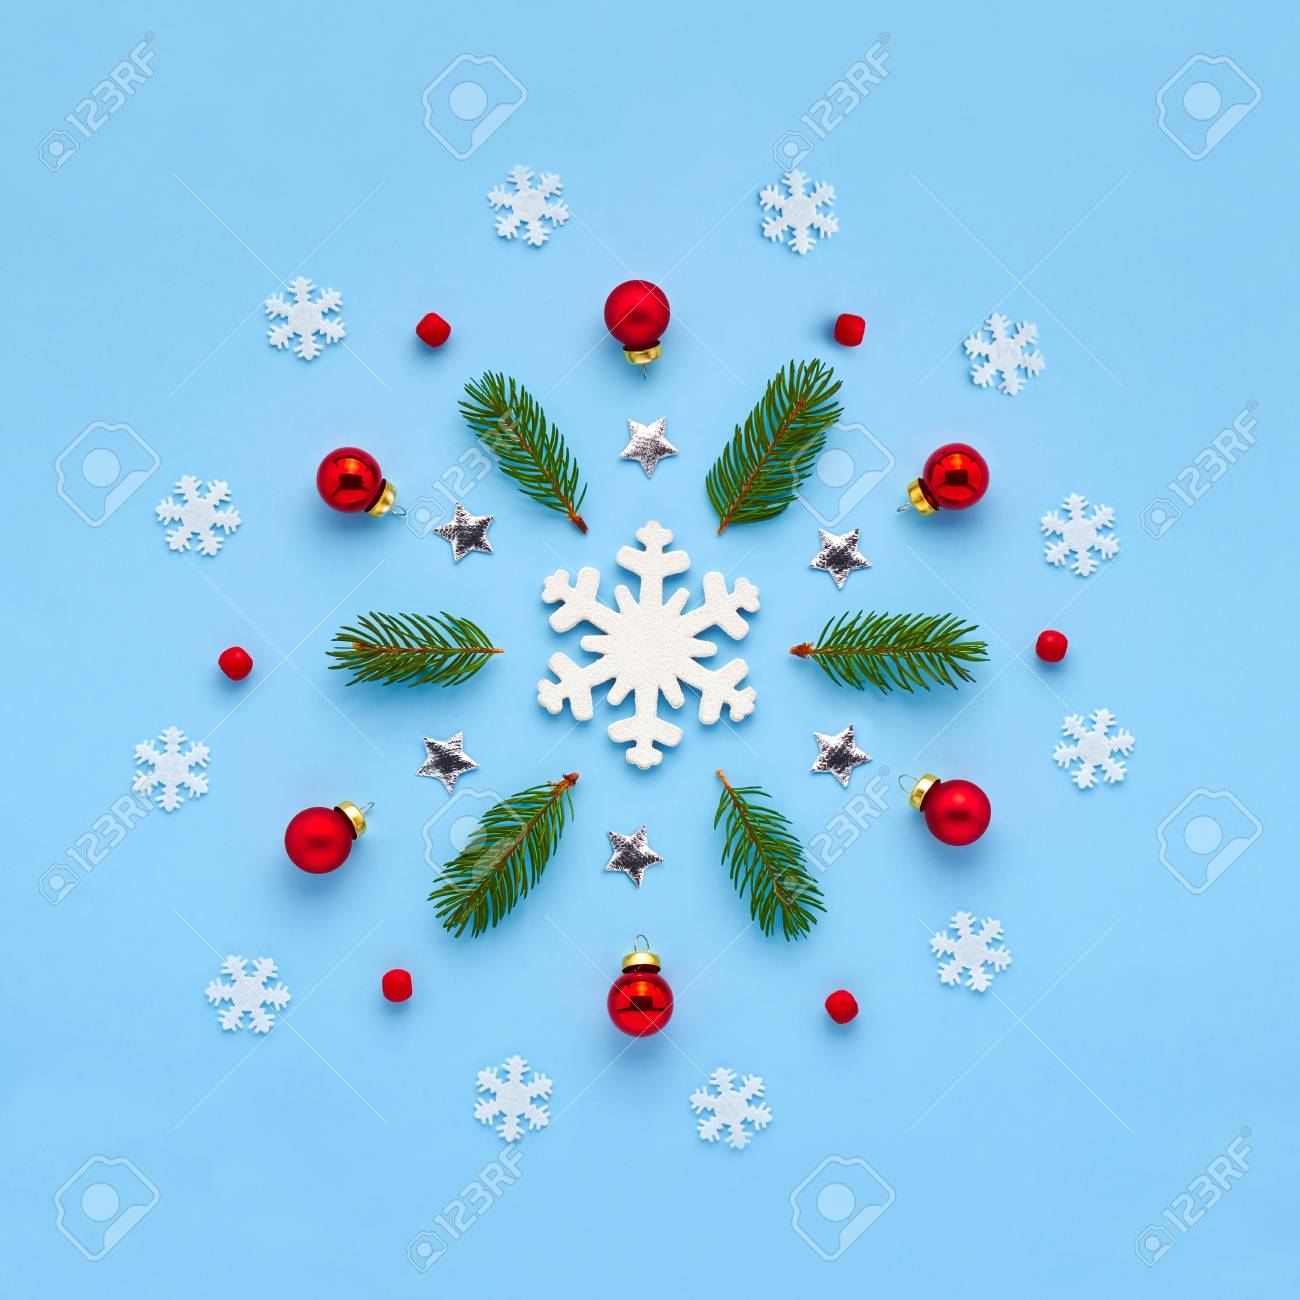 Christmas Card. Xmas Ornament From Snowflakes, Red Balls, Twigs ...